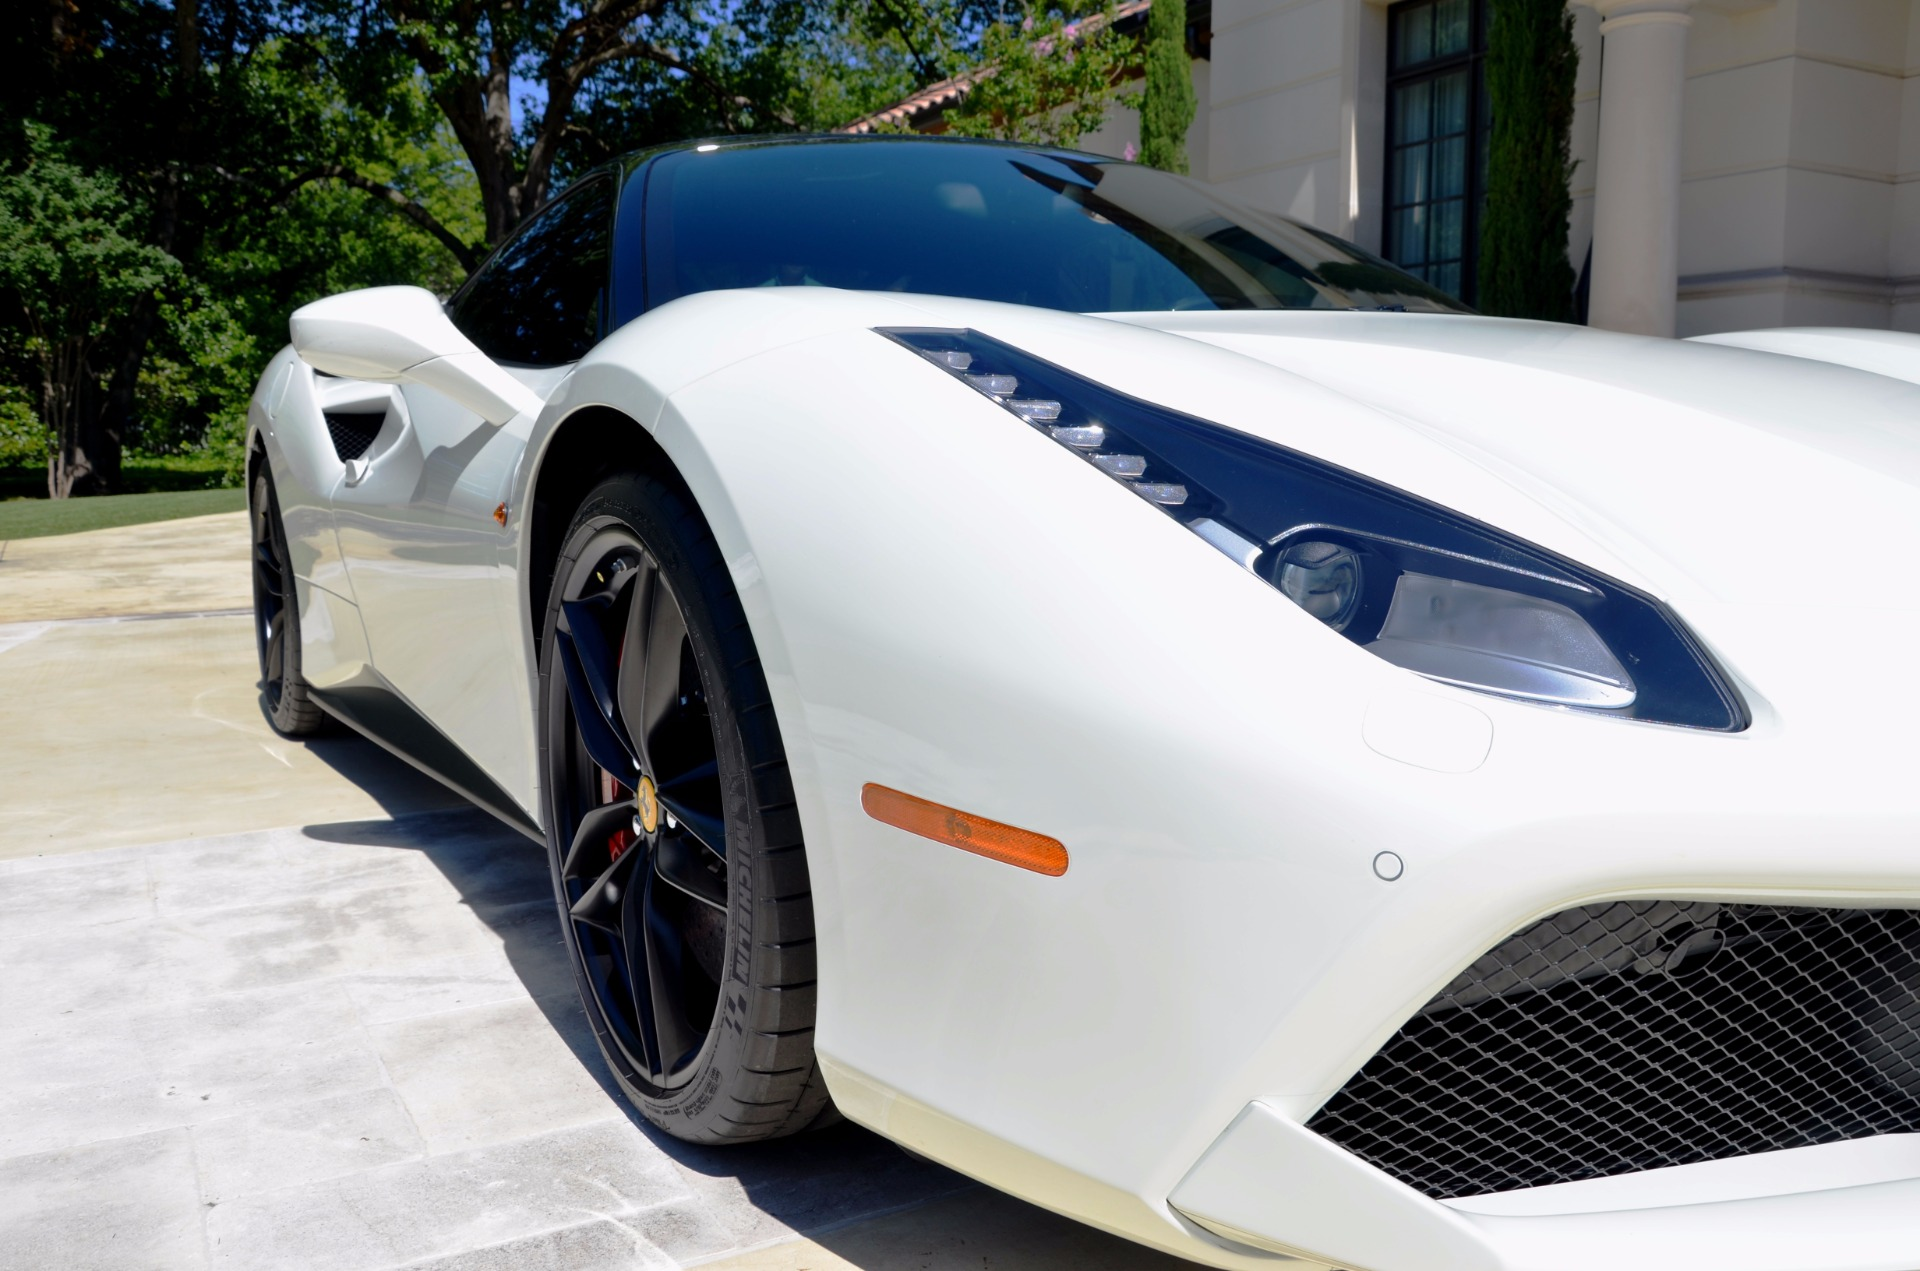 dallas rent sale l c used for stock berlinetta tx ferrari in near main htm a